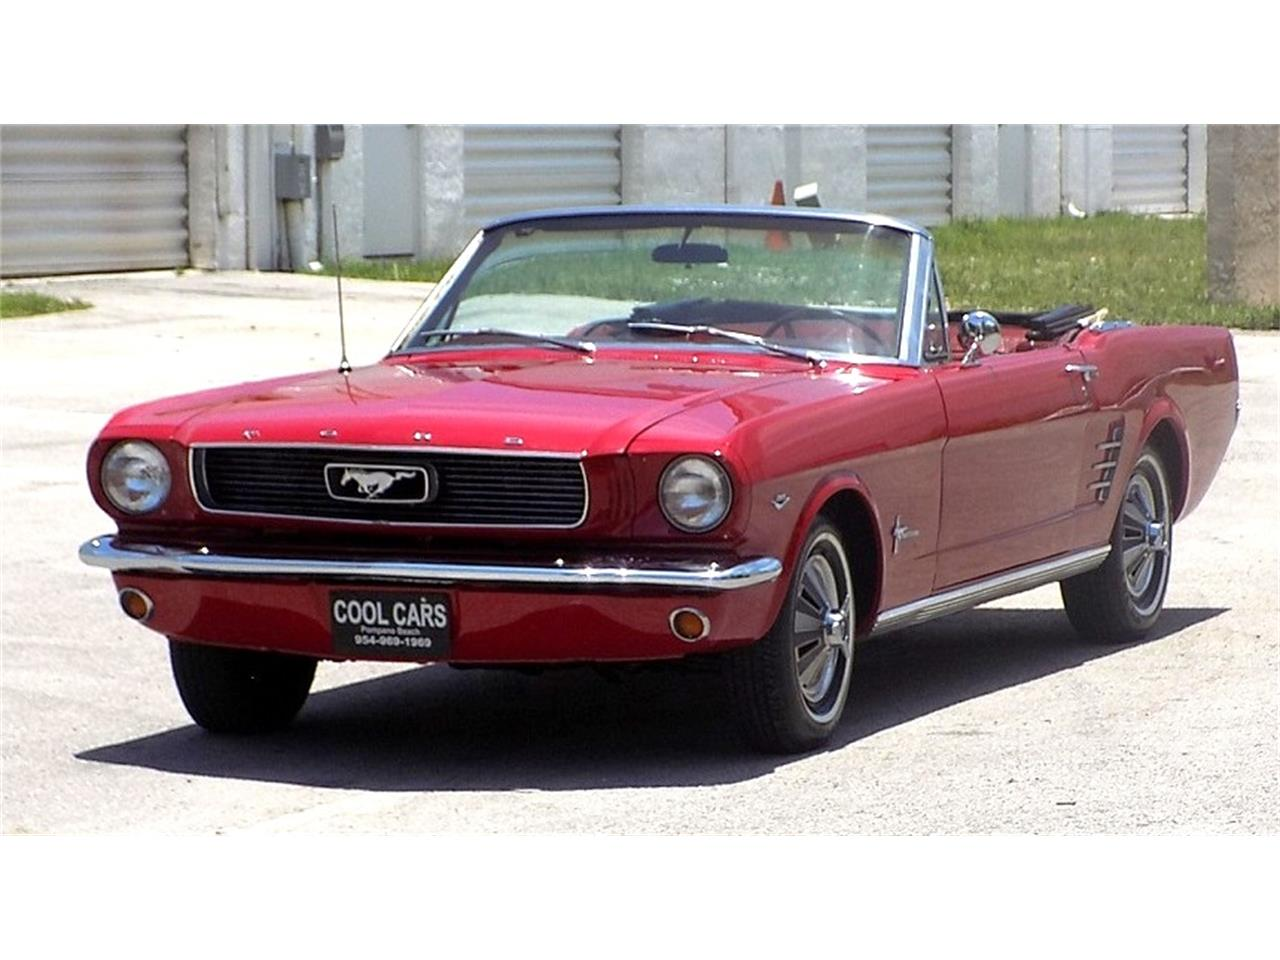 Large Picture of 1966 Mustang - $28,500.00 Offered by Cool Cars - QB3J